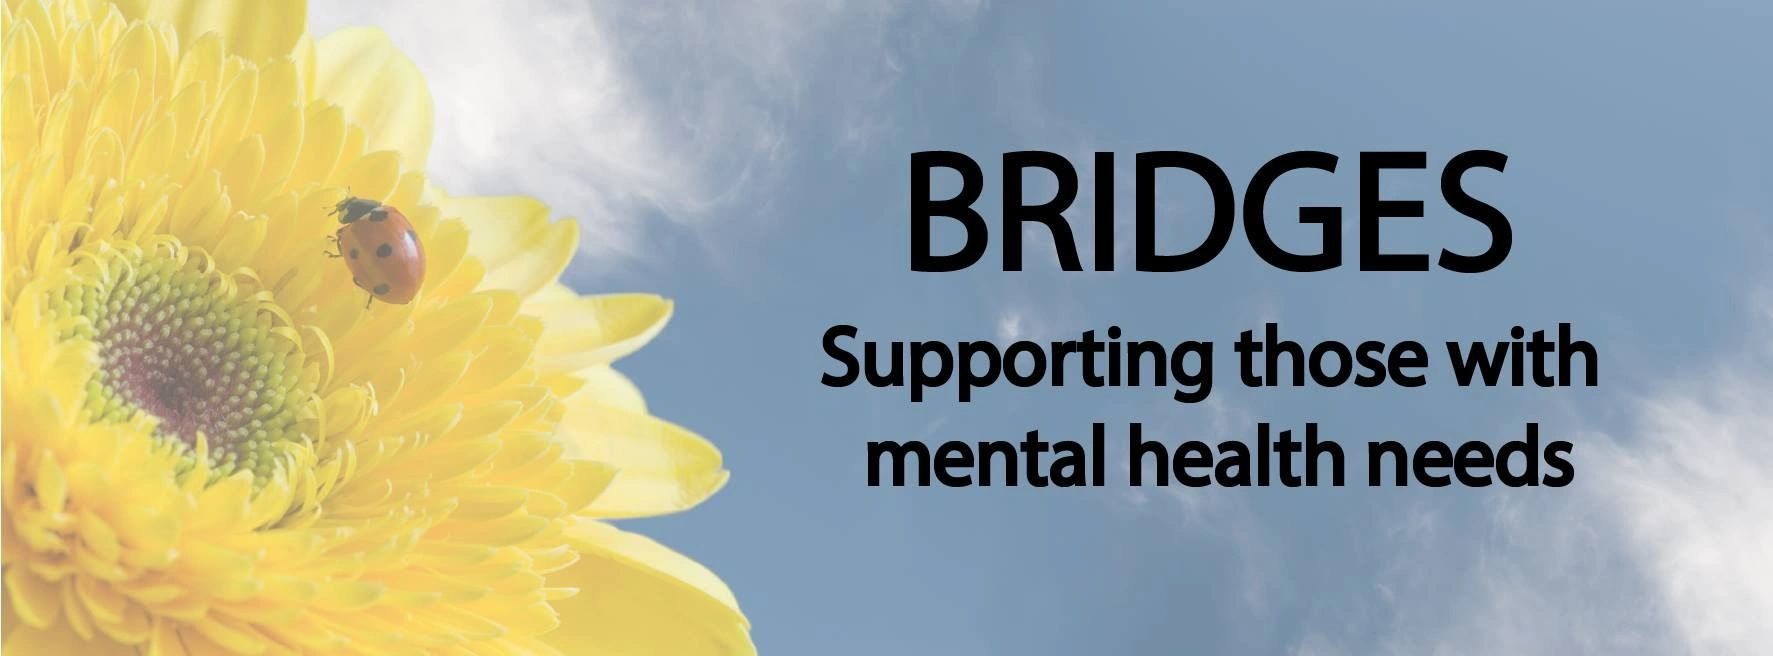 BRIDGES Supporting those with mental health needs. Yellow flower with ladybug against a sky